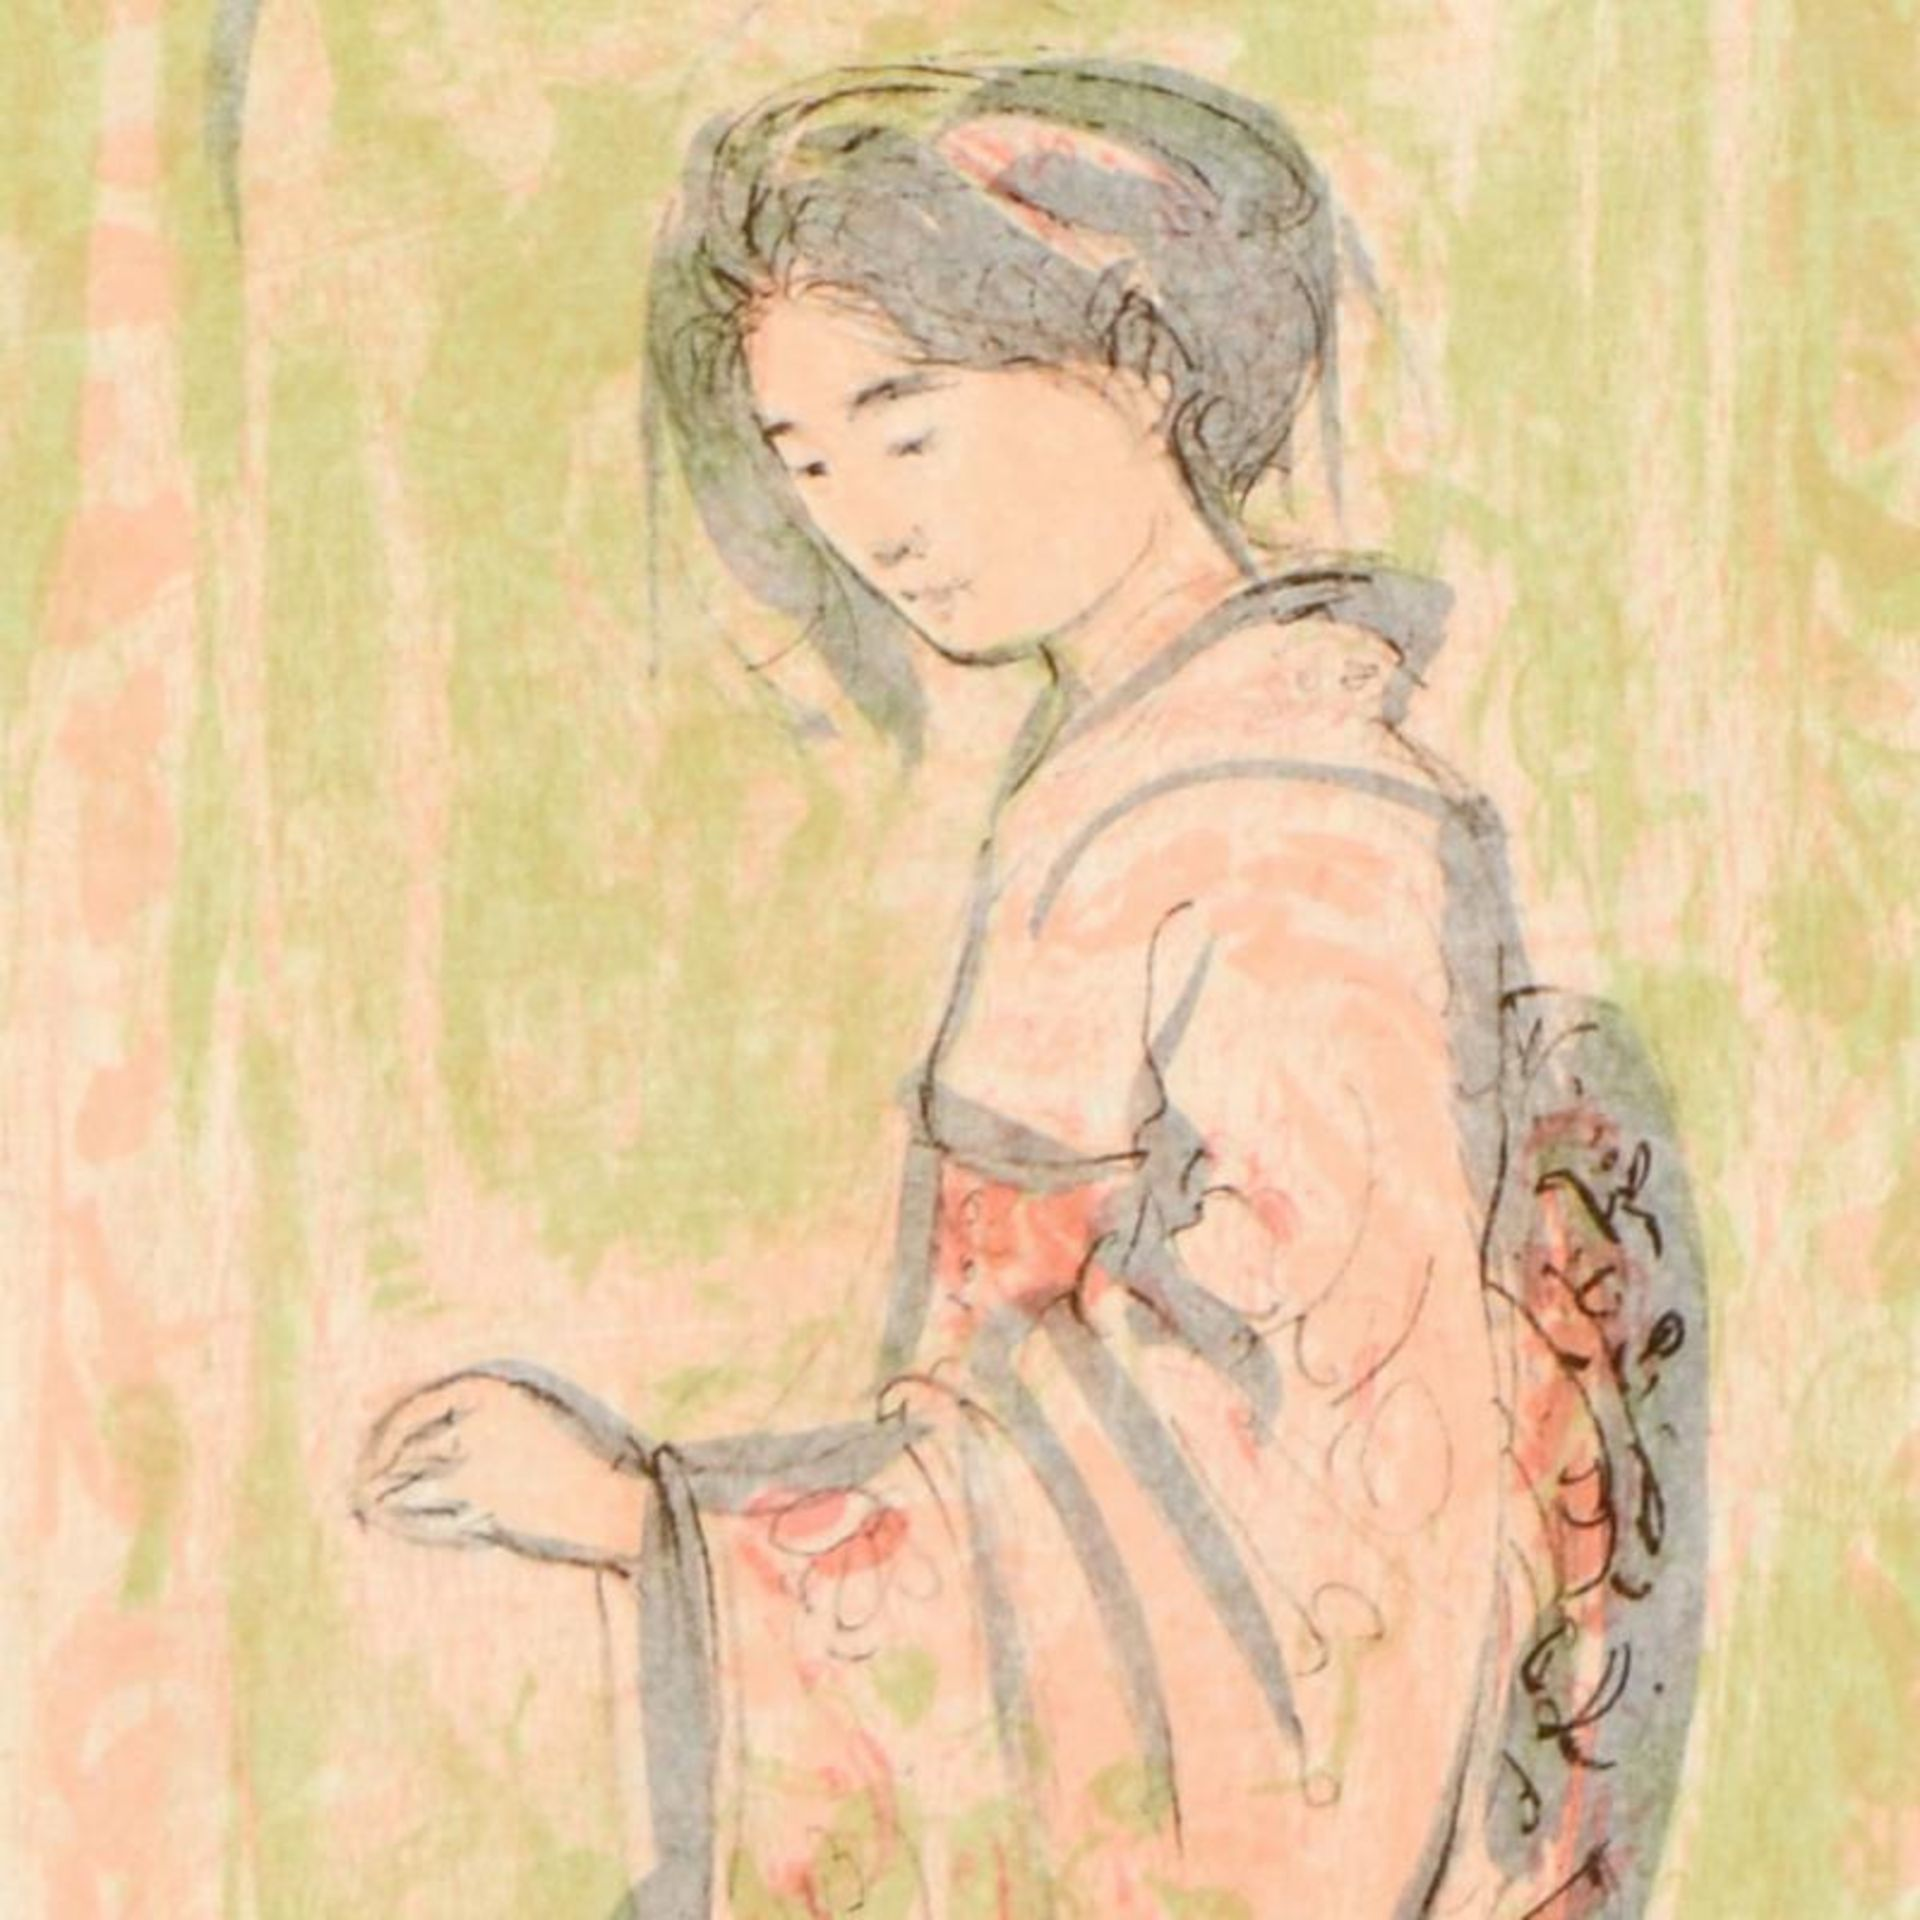 """Edna Hibel (1917-2014), """"Ume"""" Limited Edition Lithograph on Rice Paper, Numbered - Image 2 of 2"""